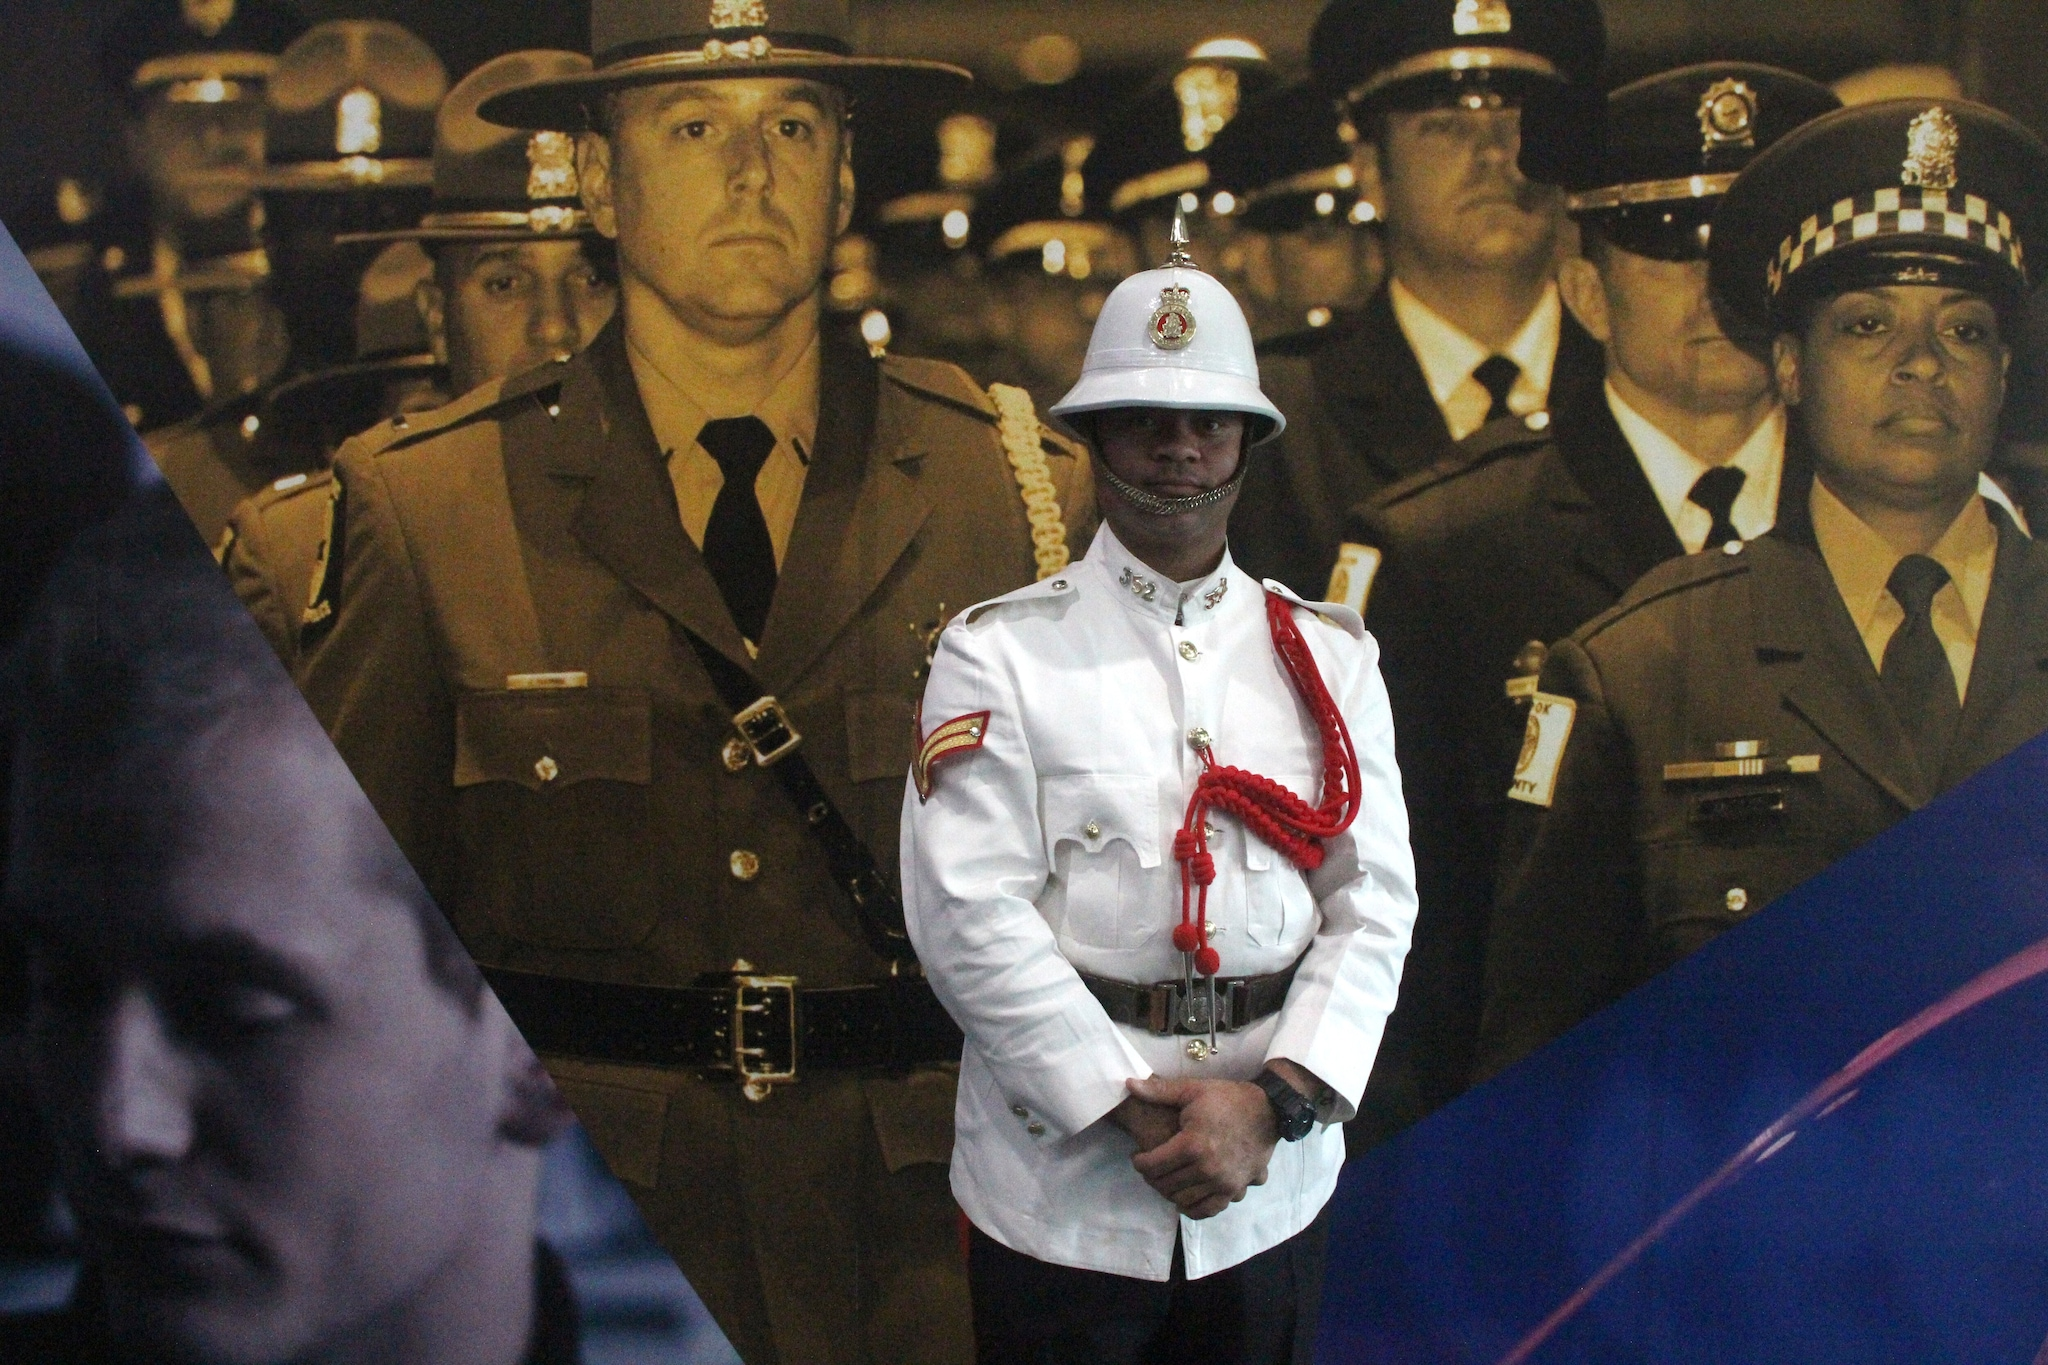 An officer from the Bahamas wear a ceremonial uniform on Uniform Day during the National Association of Police Chiefs annual convention in San Diego Oct. 15-18, 2015. (Photo: Jared Morgan / Guns.com)